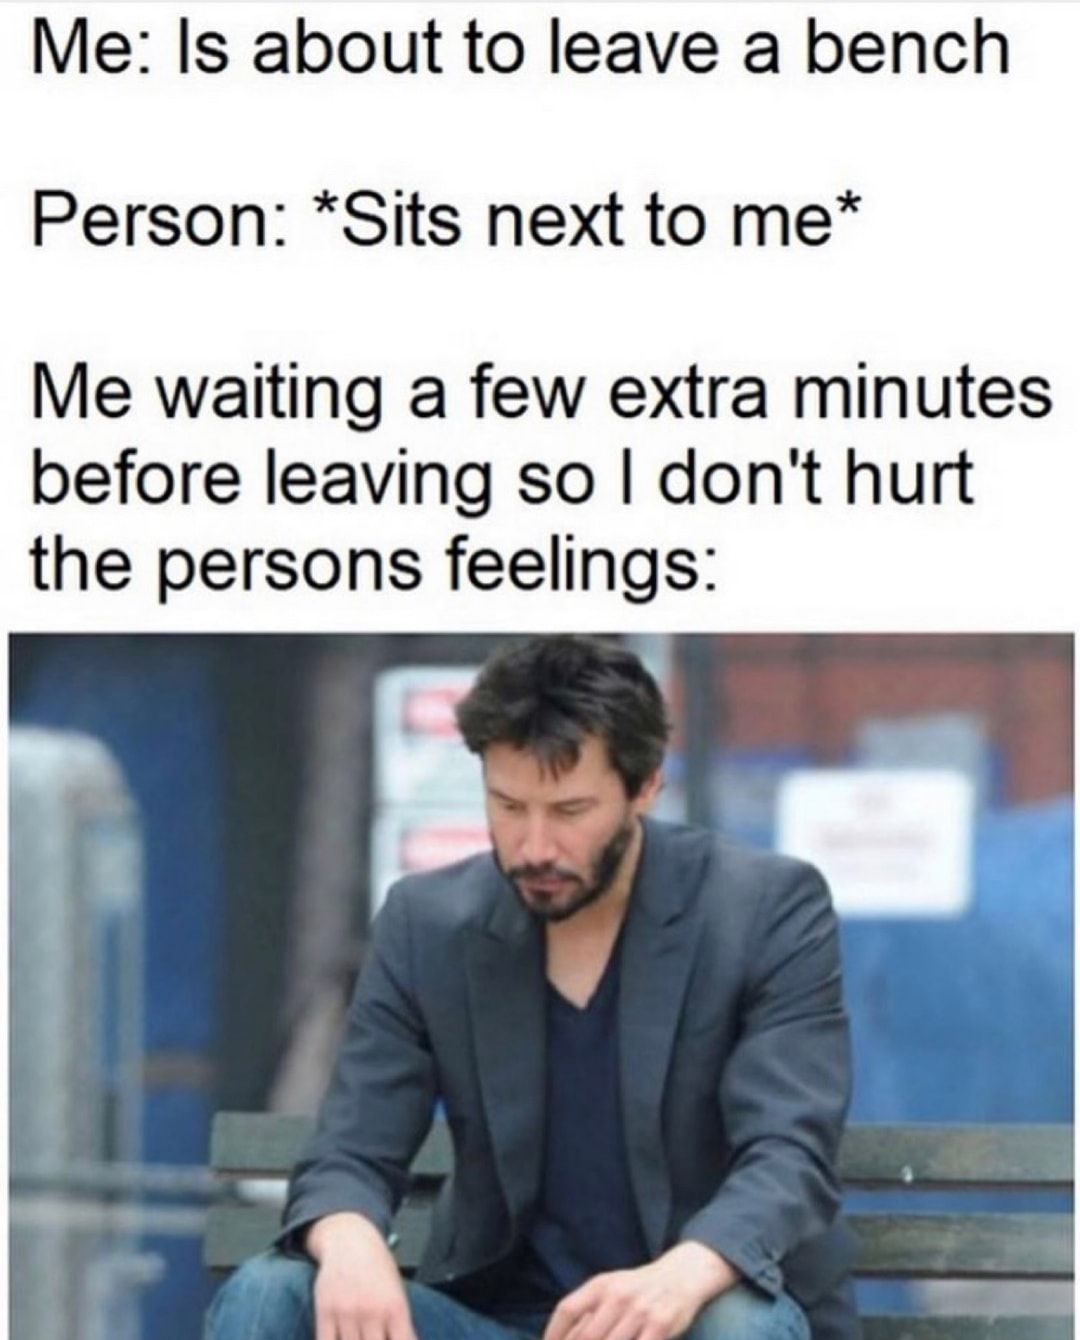 I have actually done this before